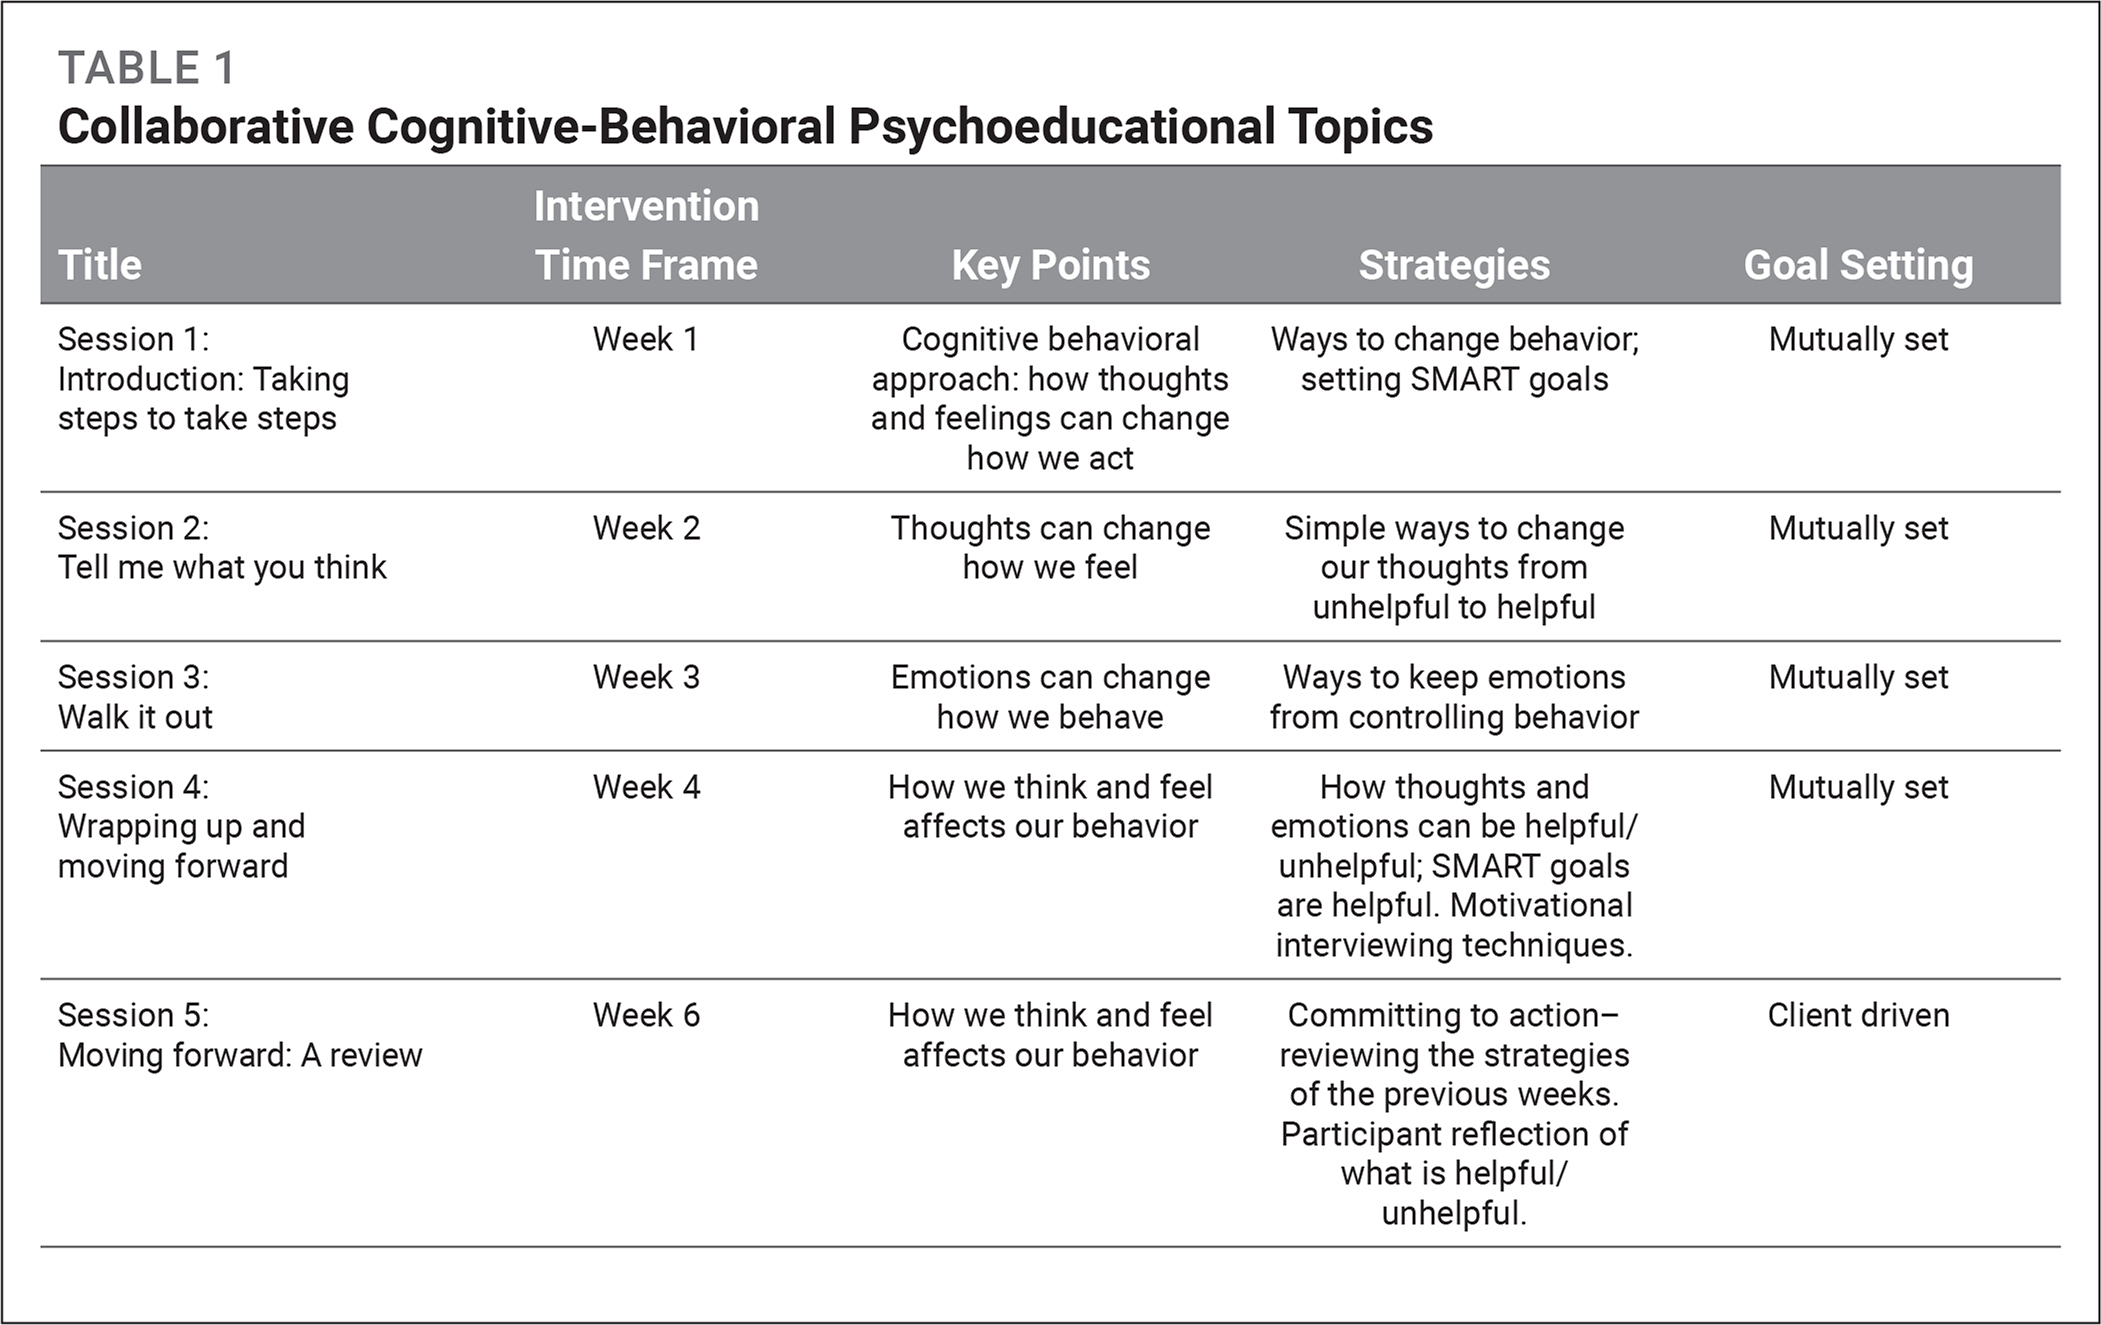 Collaborative Cognitive-Behavioral Psychoeducational Topics